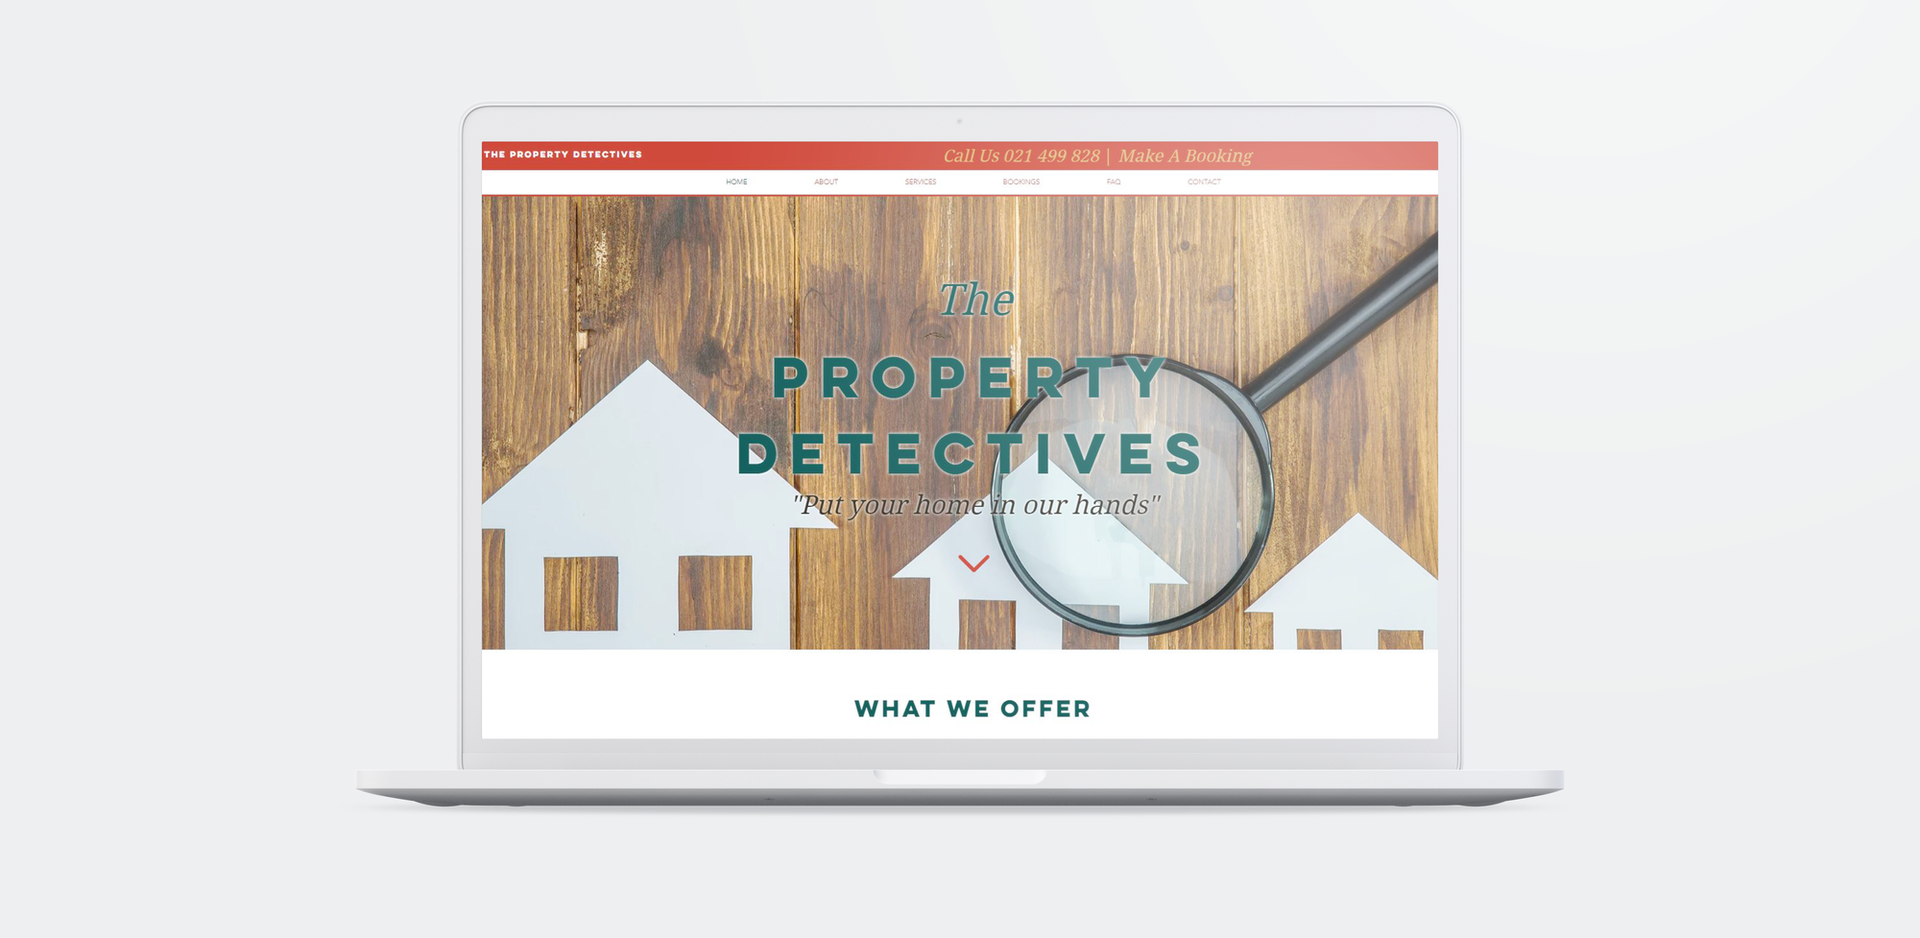 The Property Detectives